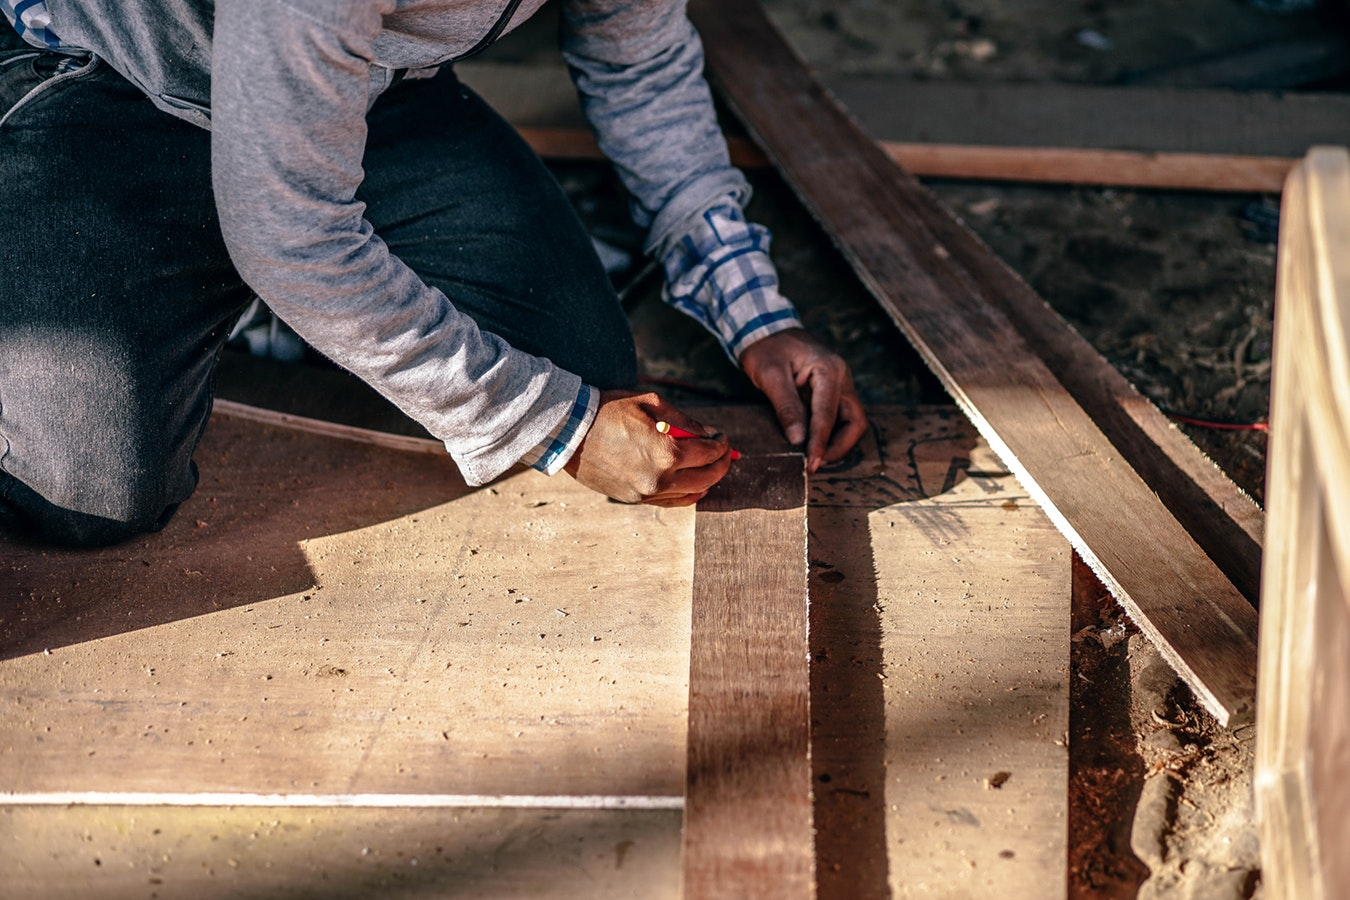 Osteoarthritis affects construction workers, those of old-age, and many sports players.